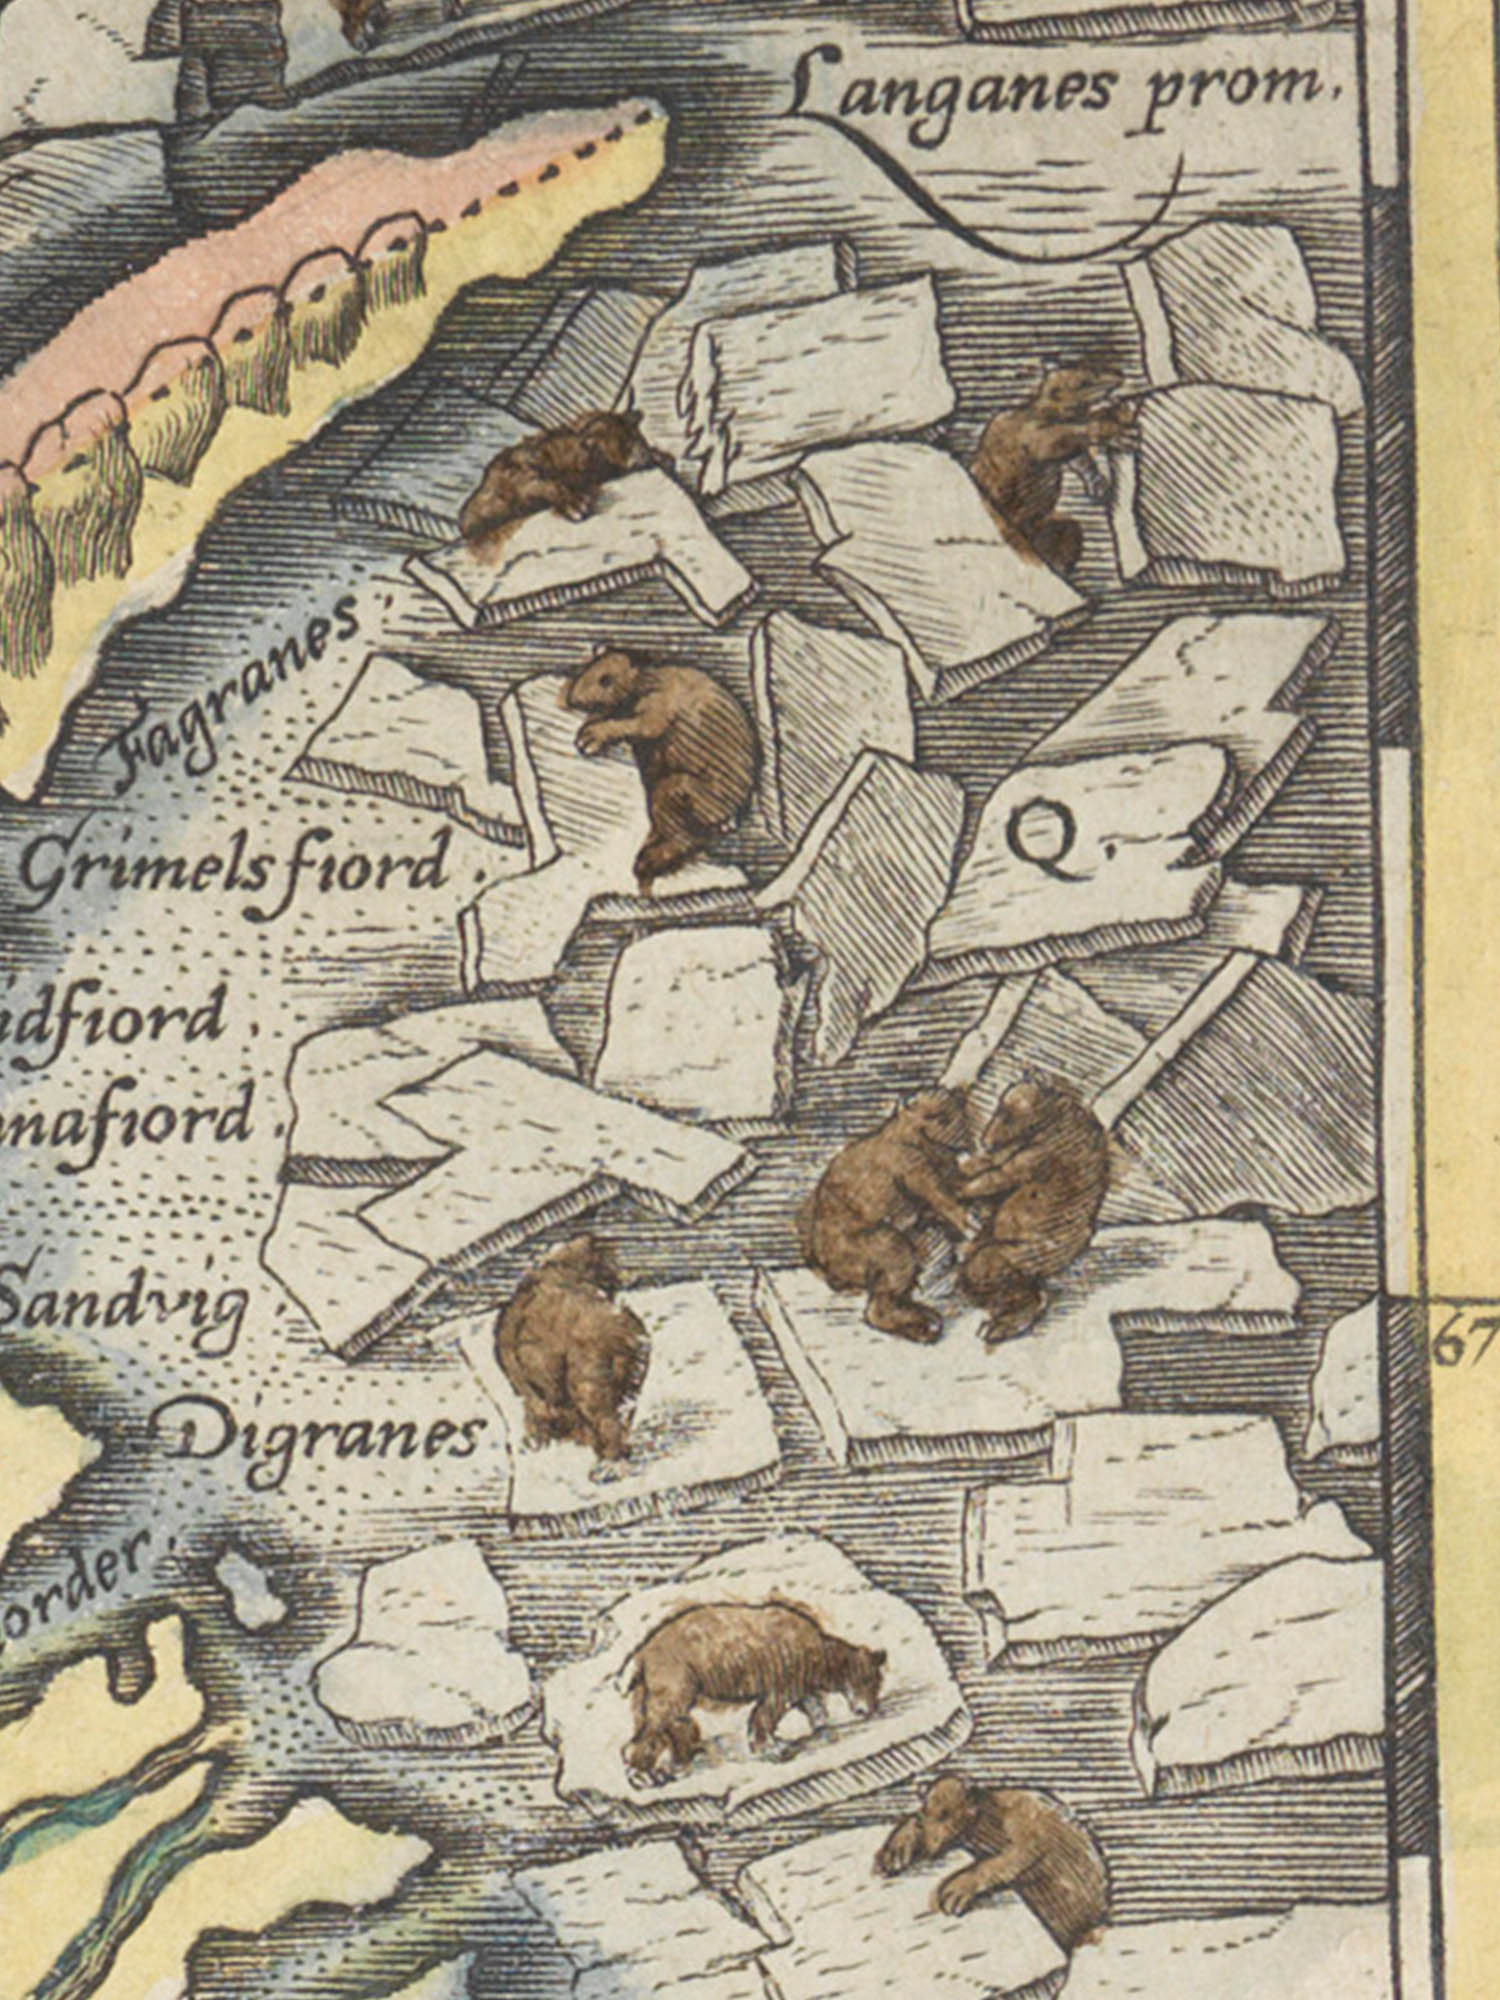 Image of heaps of ice from the Islandia map.